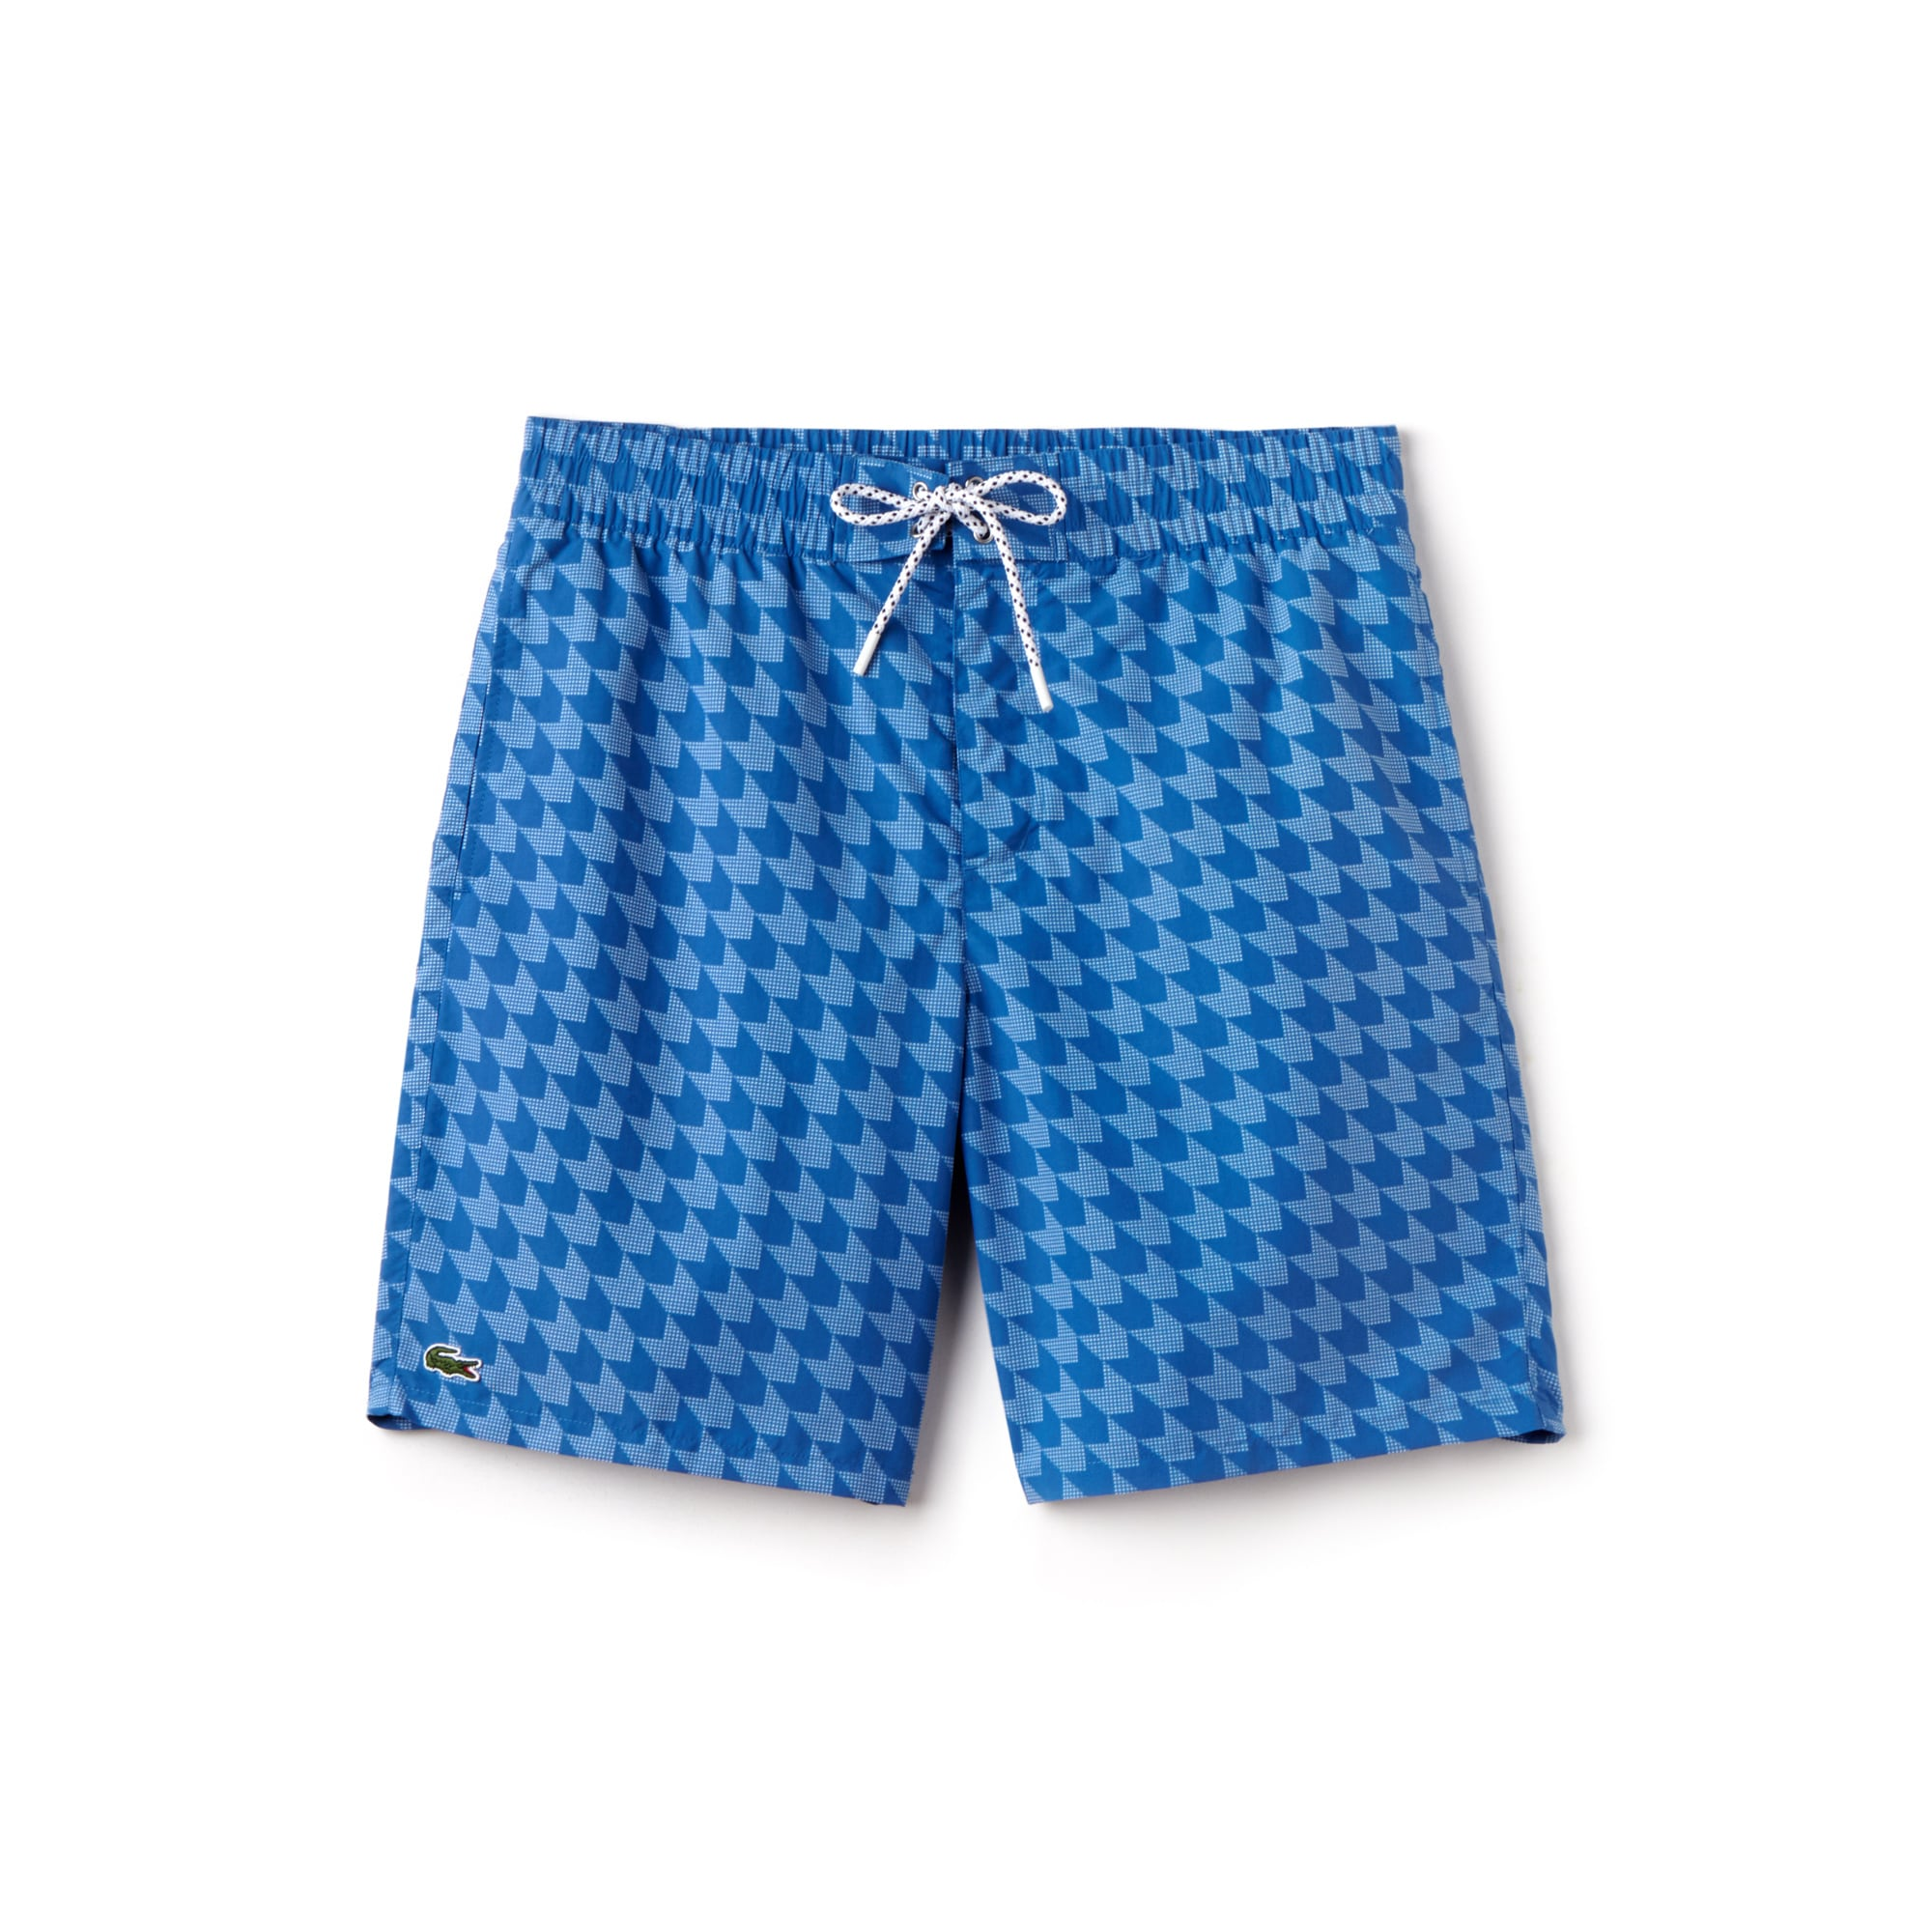 Men's Long Cut Houndstooth Print Swimming Trunks